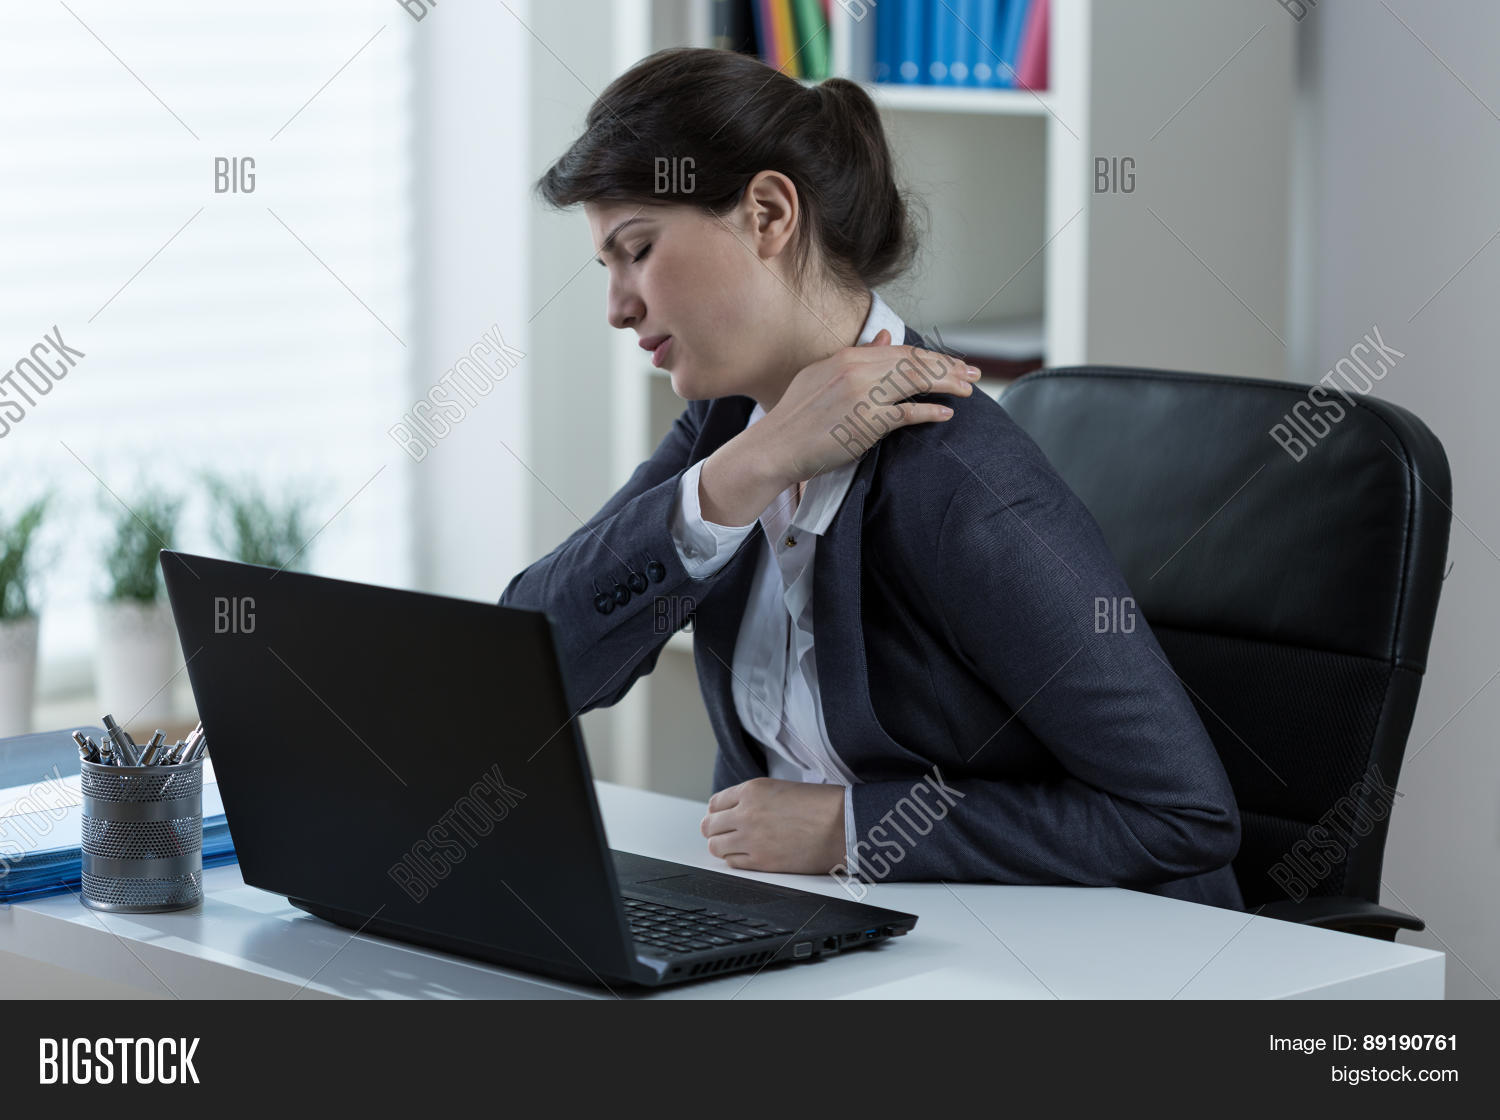 arthritis,back,backache,back pain,business,businesswoman,cervical,chronic,chronic pain,computer,contemporary,corporation,desk,disease,disorder,employee,female,job,laptop,lifestyle,manager,massaging,muscles,neck,occupation,occupational,office,overwork,pain,painful,pain management,problem,sedentary,shoulder,shoulder pain,sitting,spine,strain,stress,stressed woman,stress management,suffer,table,tense,tension,touch,uncomfortable,white-collar,woman,woman back,work,worker,workplace